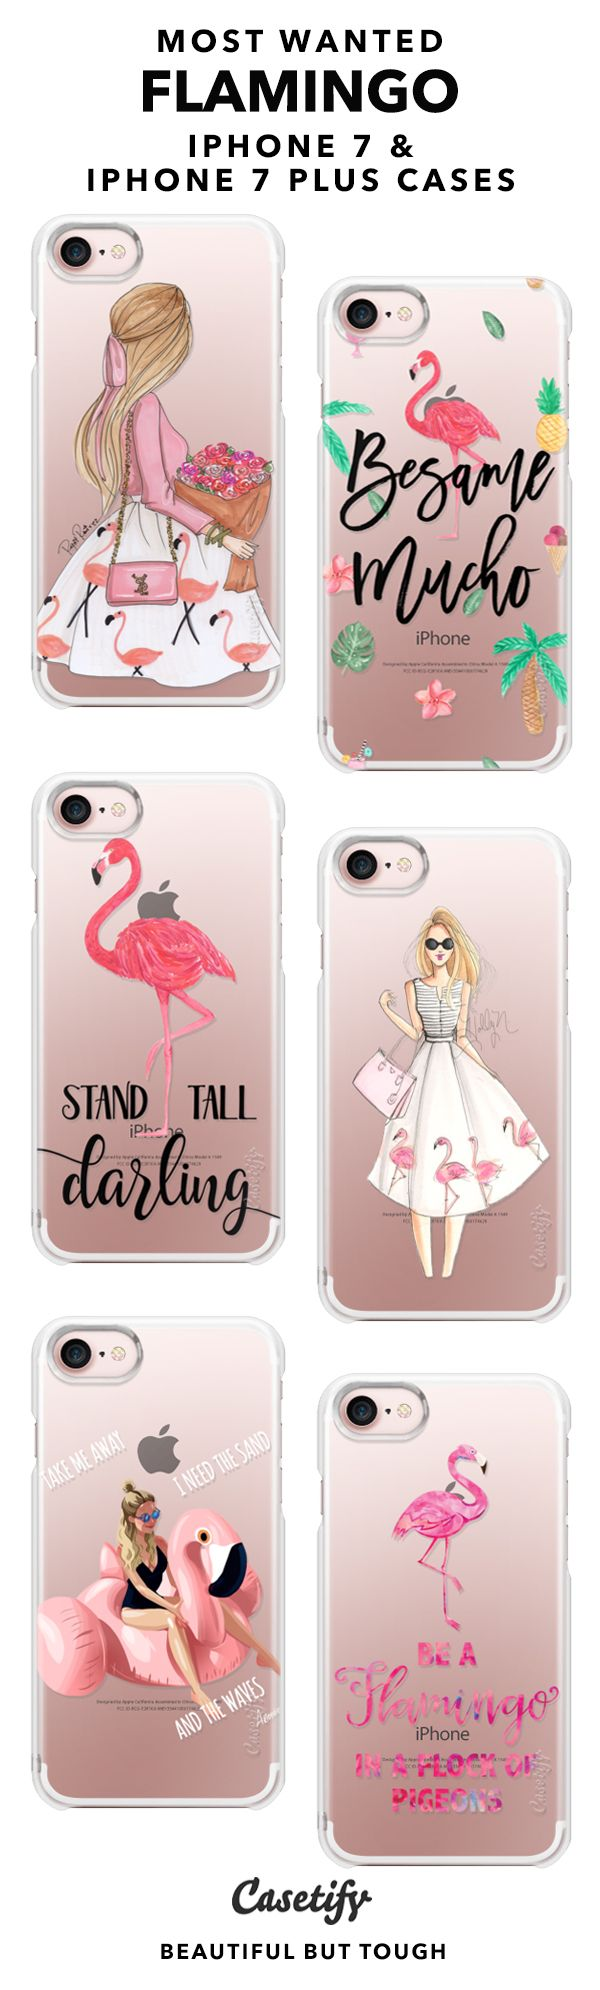 """""""Stand Tall, Darling."""" 